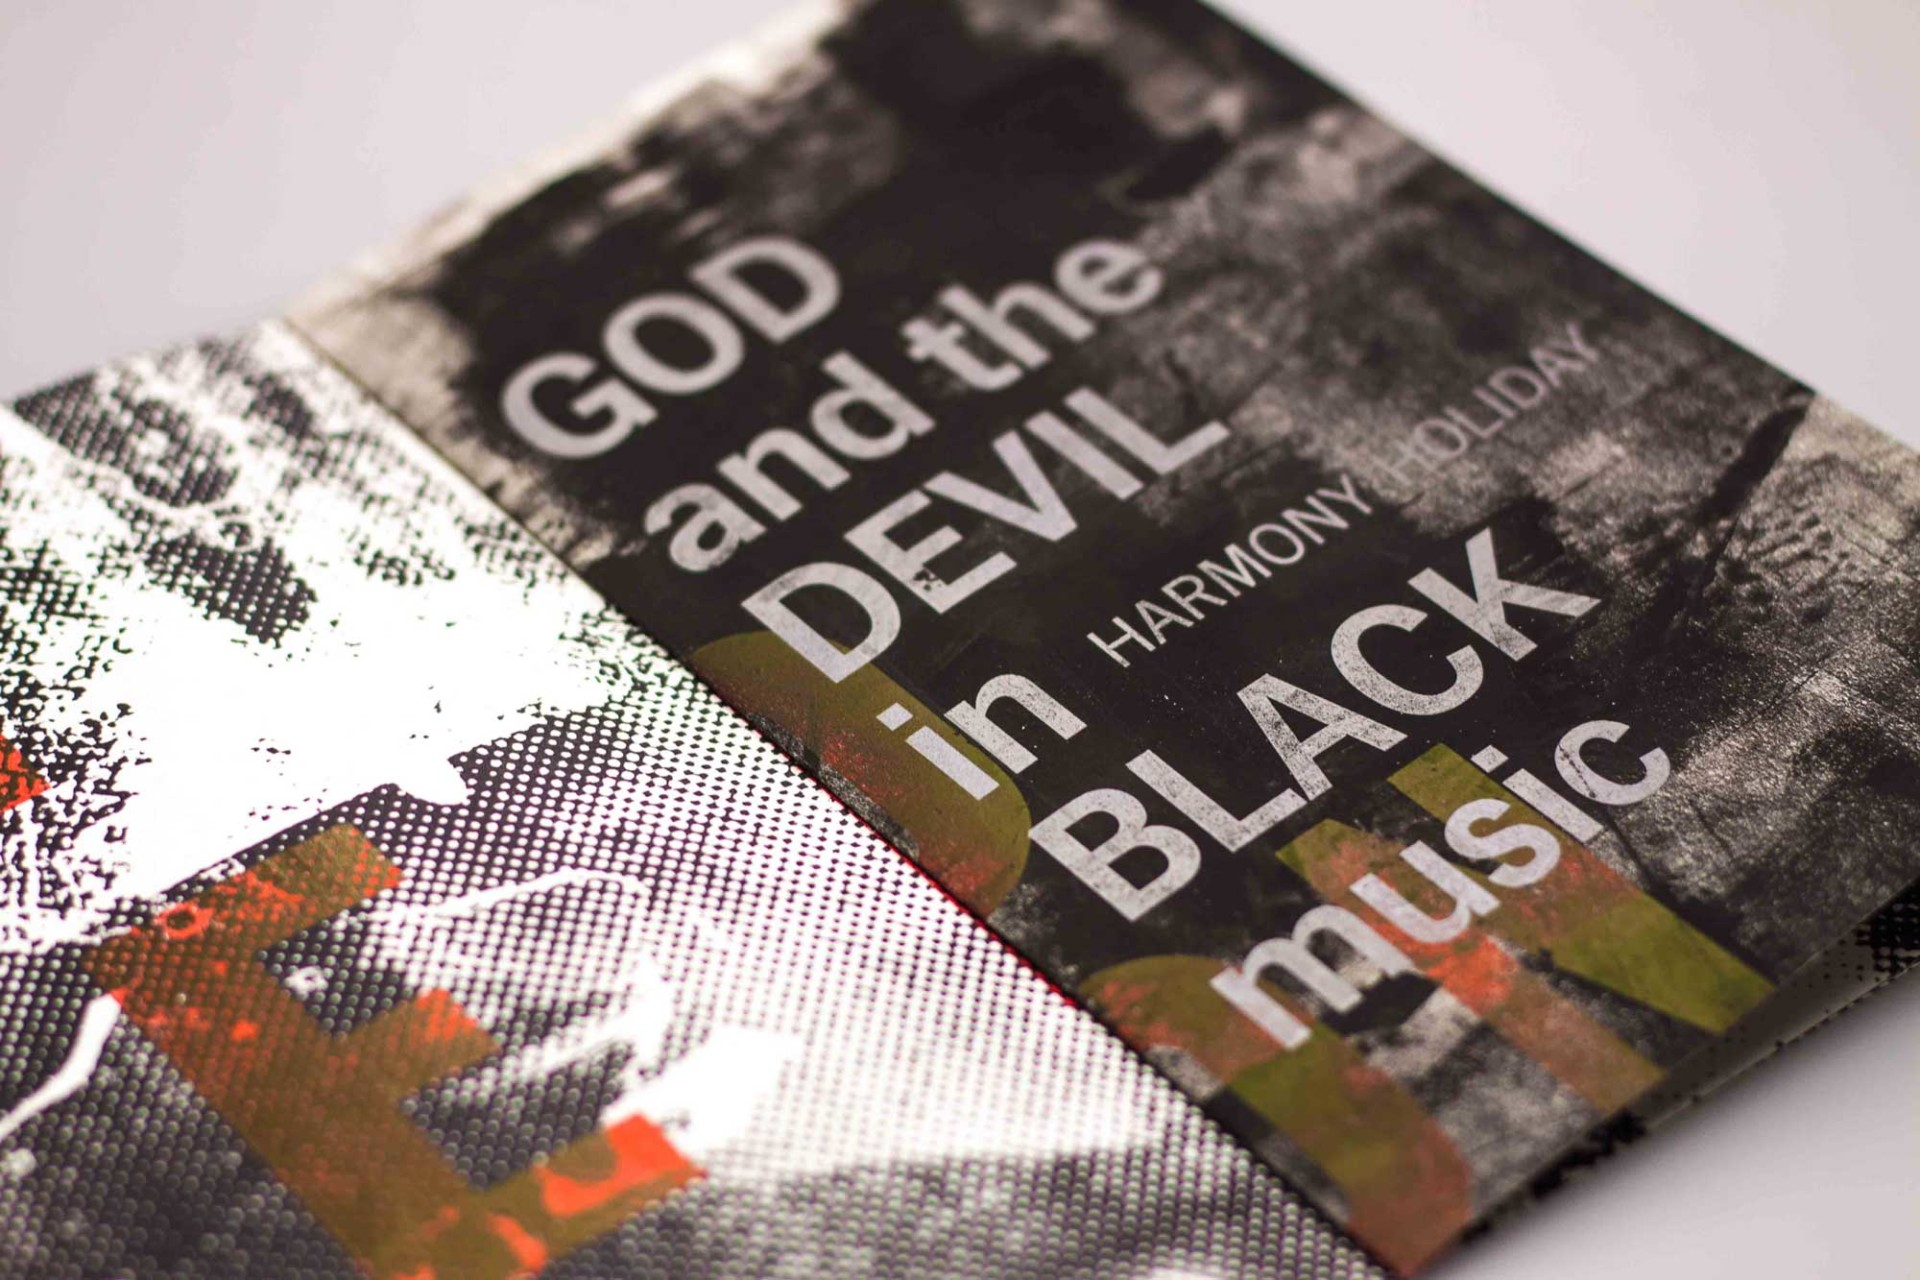 David Jimenez God Devil Black